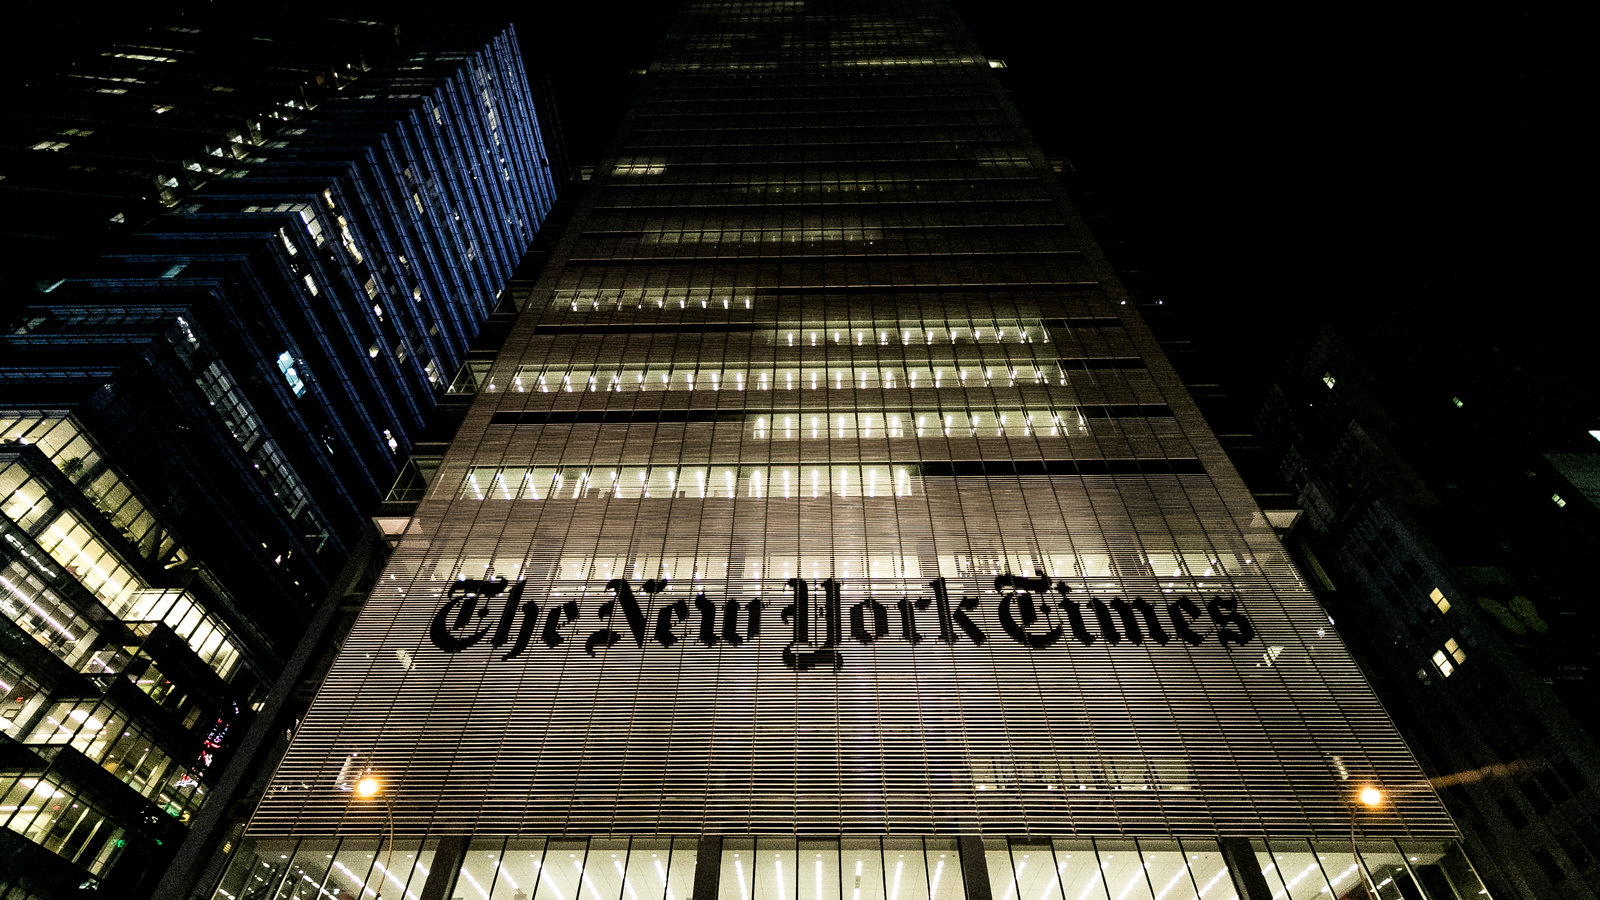 New York Times Co Subscription Revenue Surpassed 1